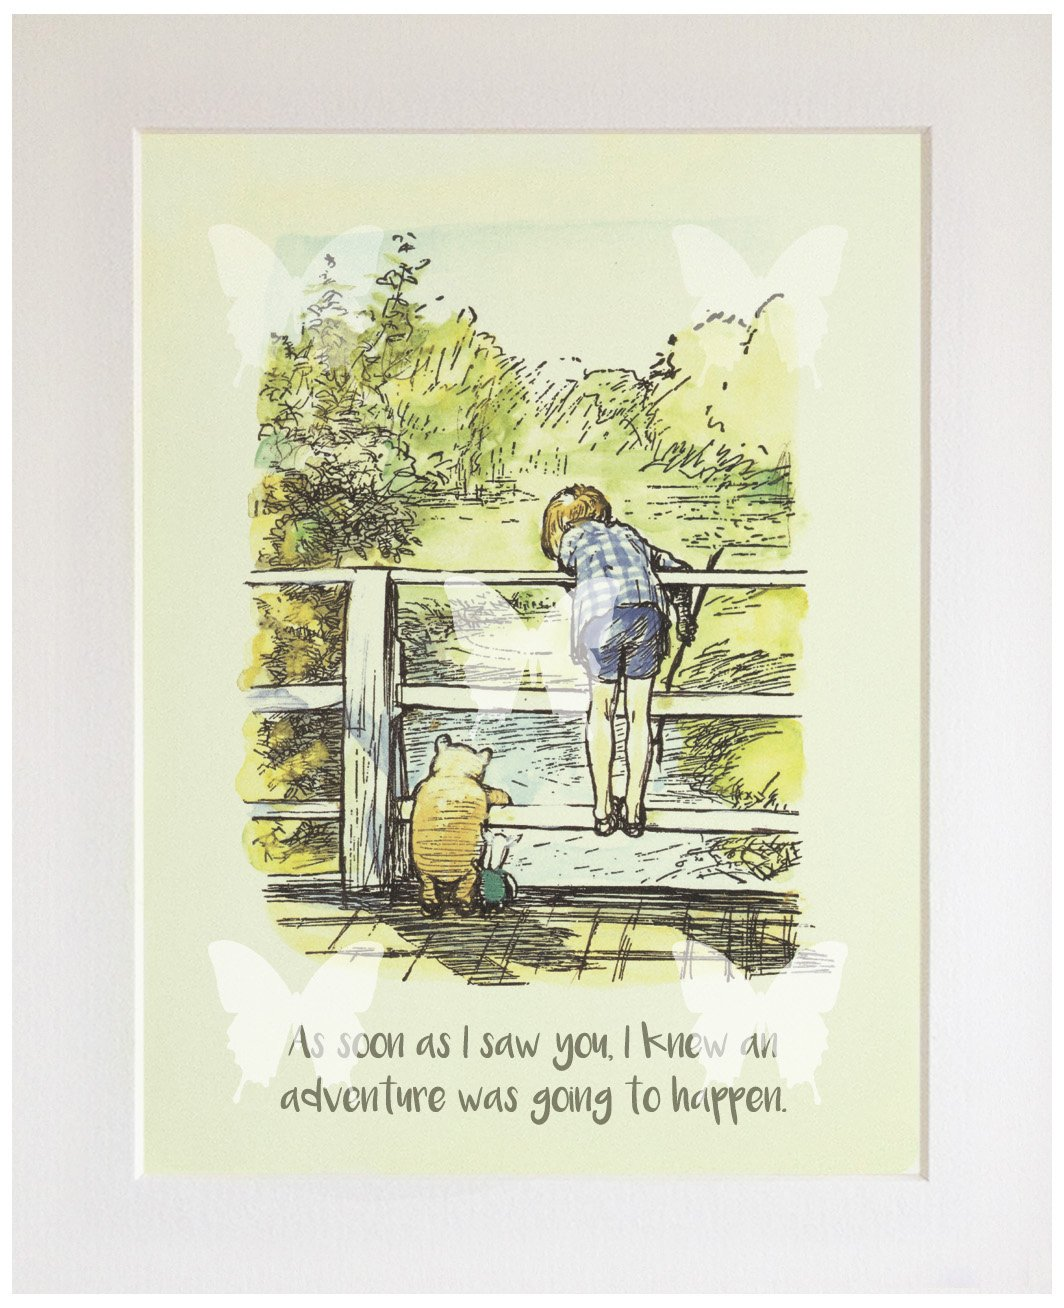 CLASSIC WINNIE THE POOH QUOTE PRINT (UNFRAMED), New Baby/Birth, Baby Shower, Christening, Nursery Picture Gift, As soon as I saw you, adventure The Blue Butterfly Emporium